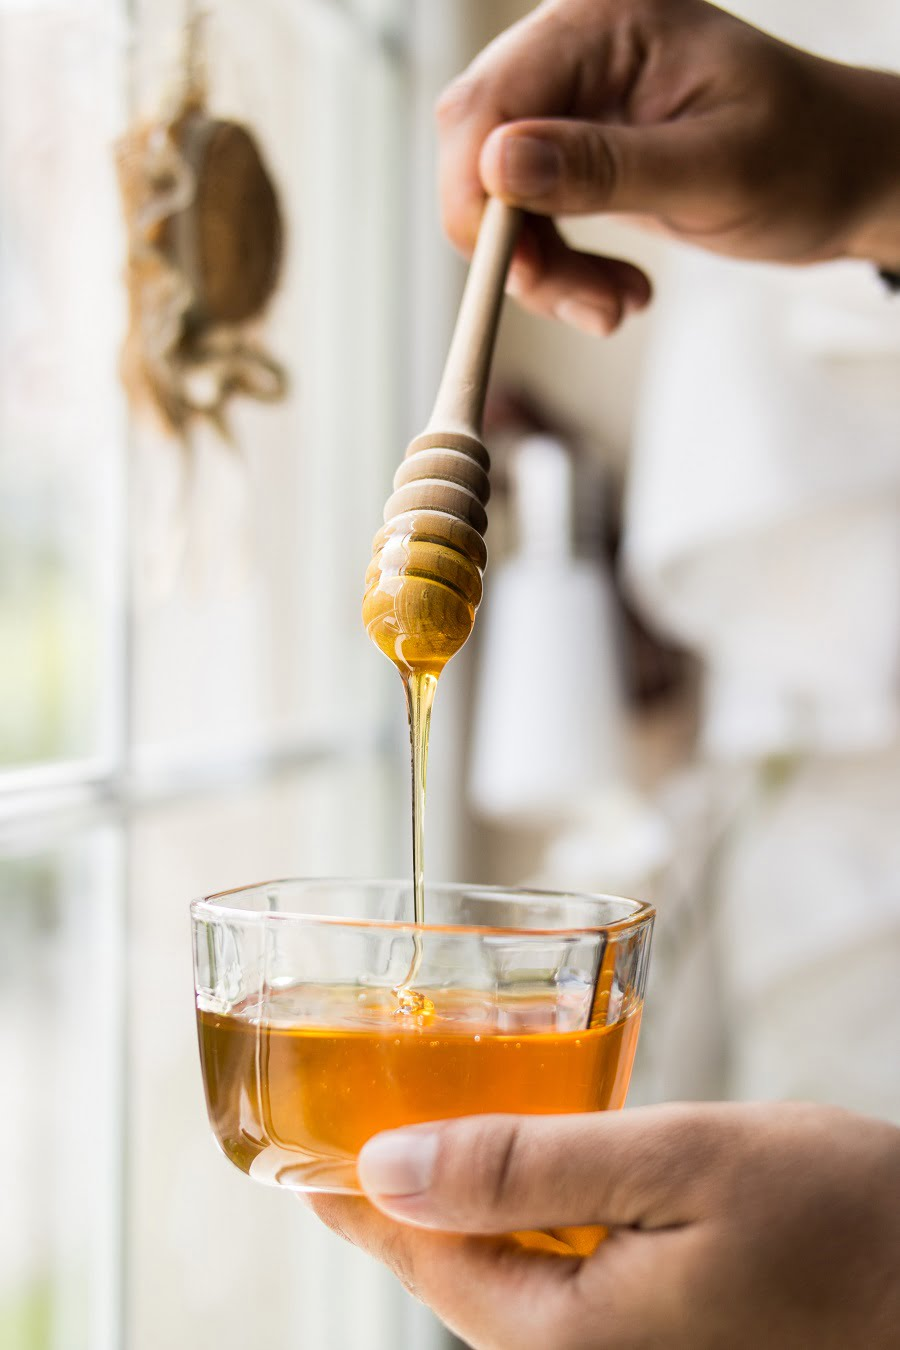 Are natural sweeteners any better?